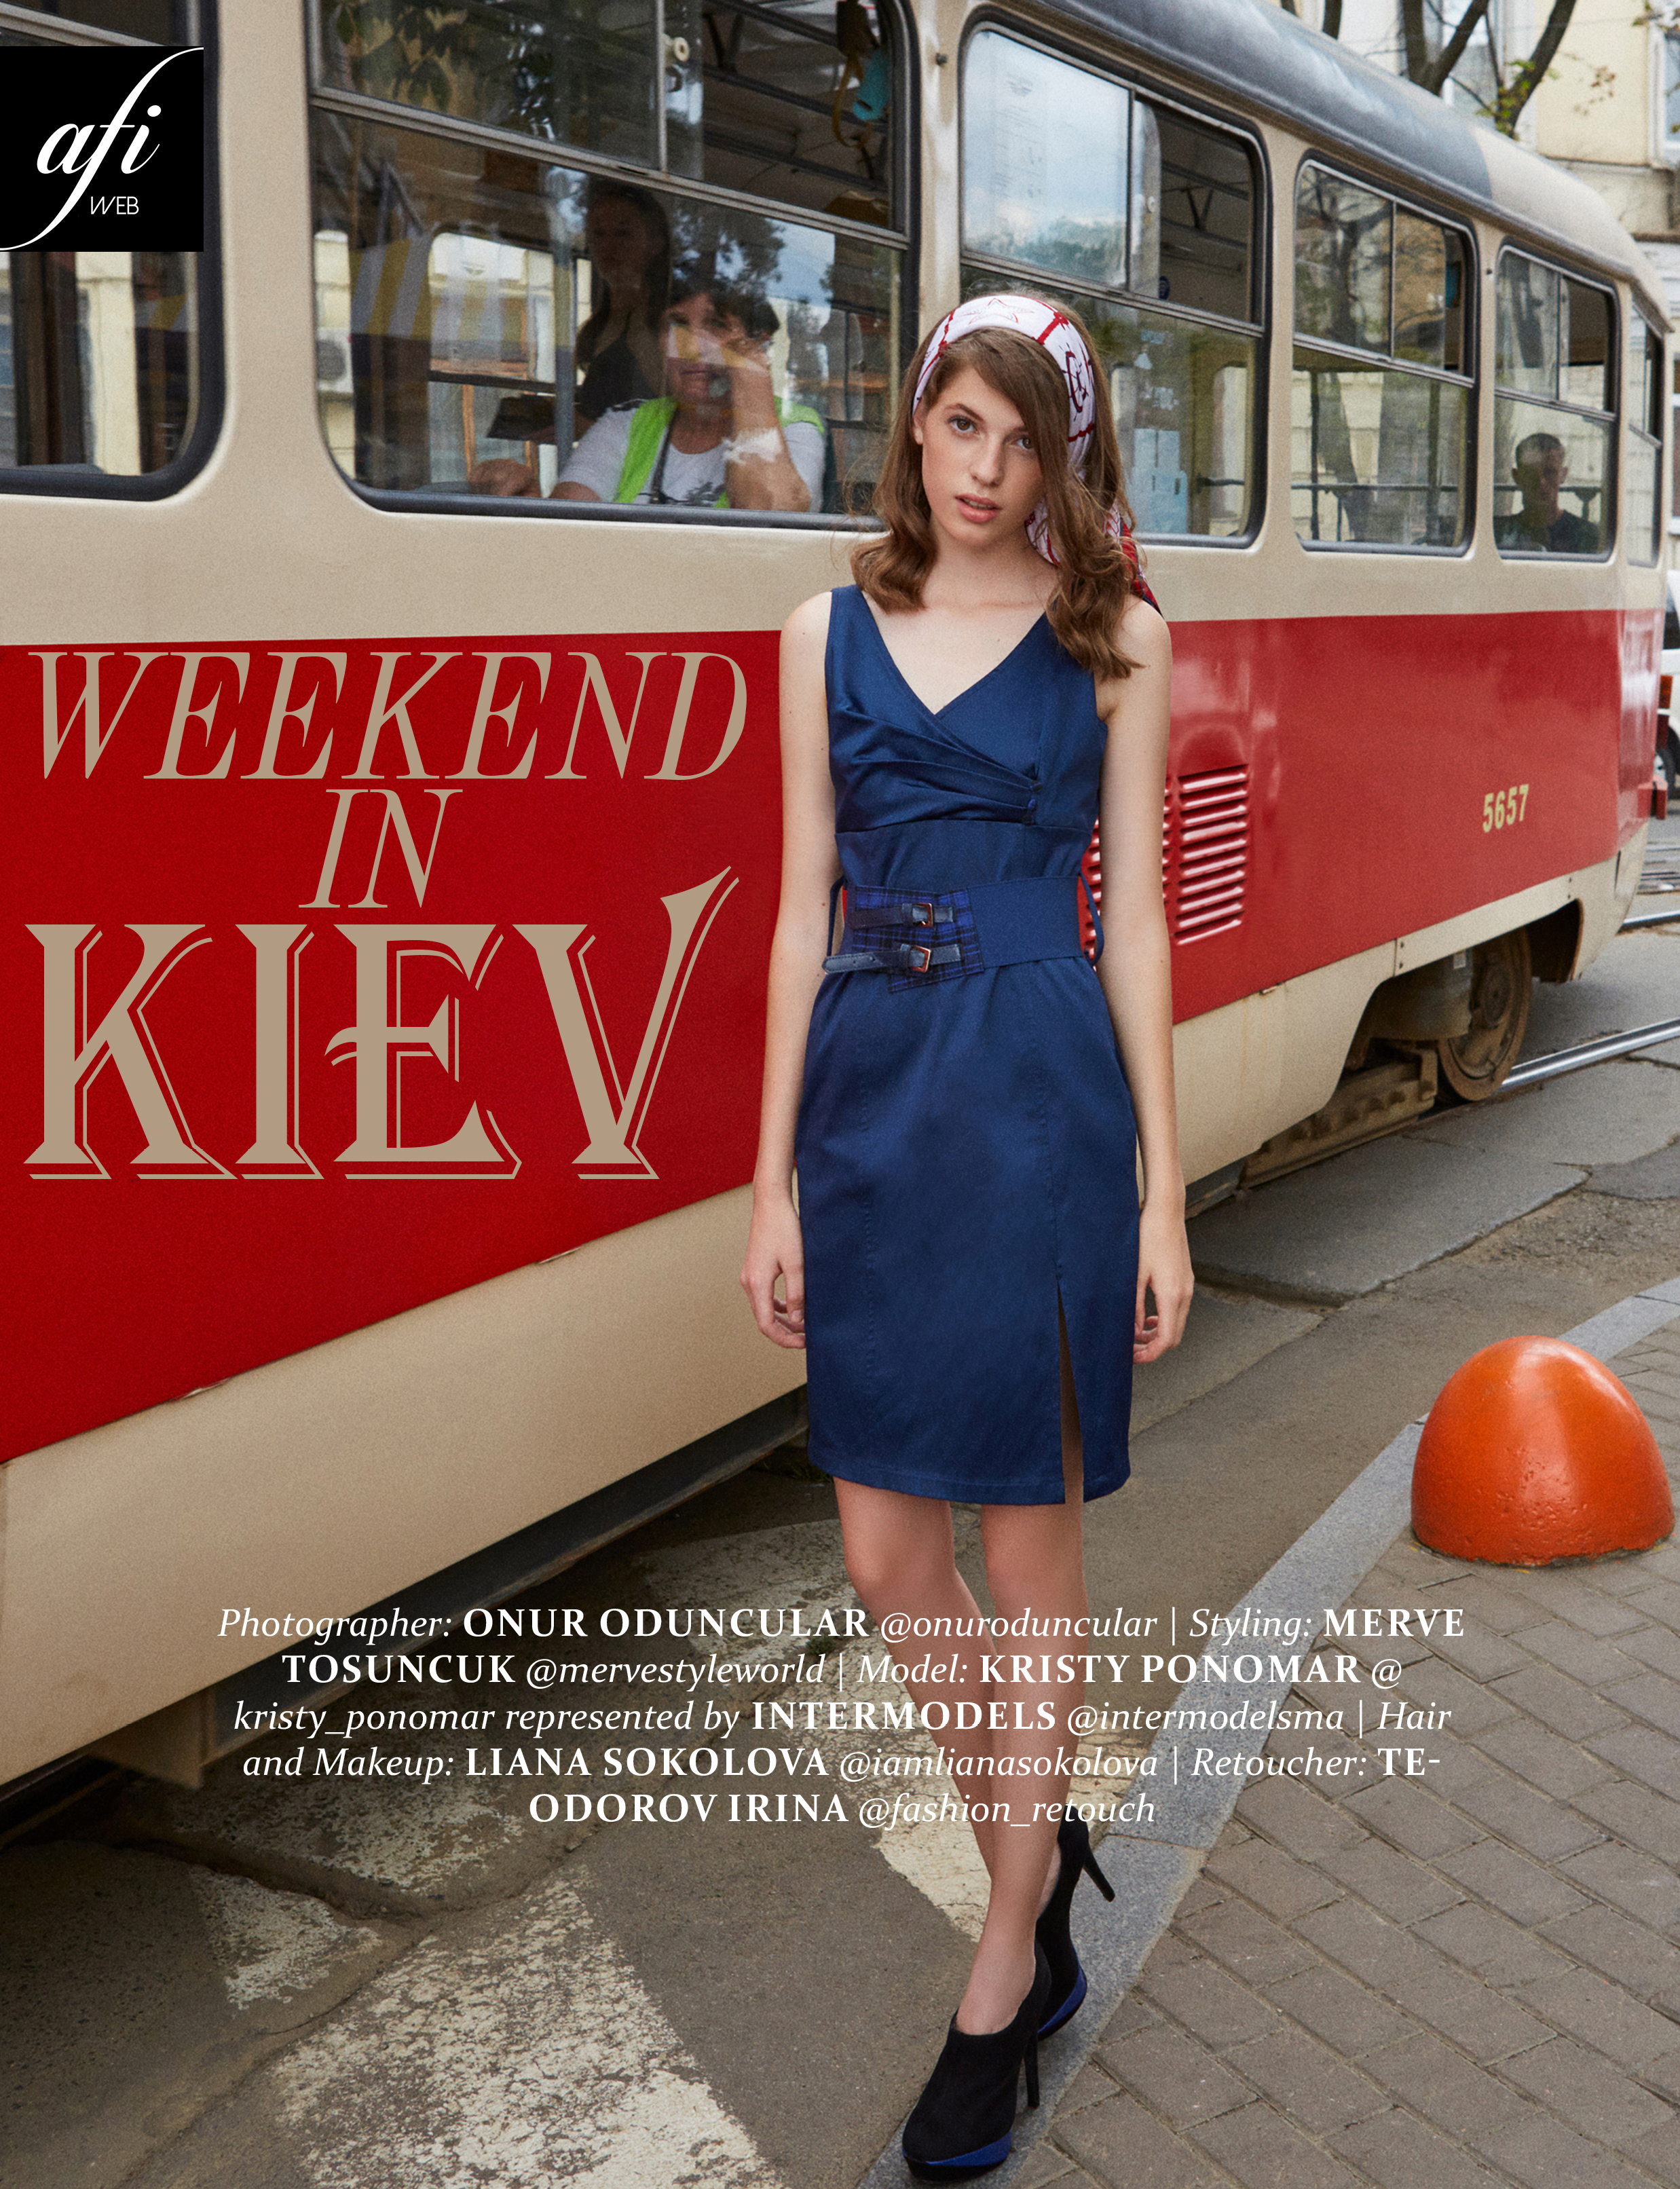 weekend in kiev